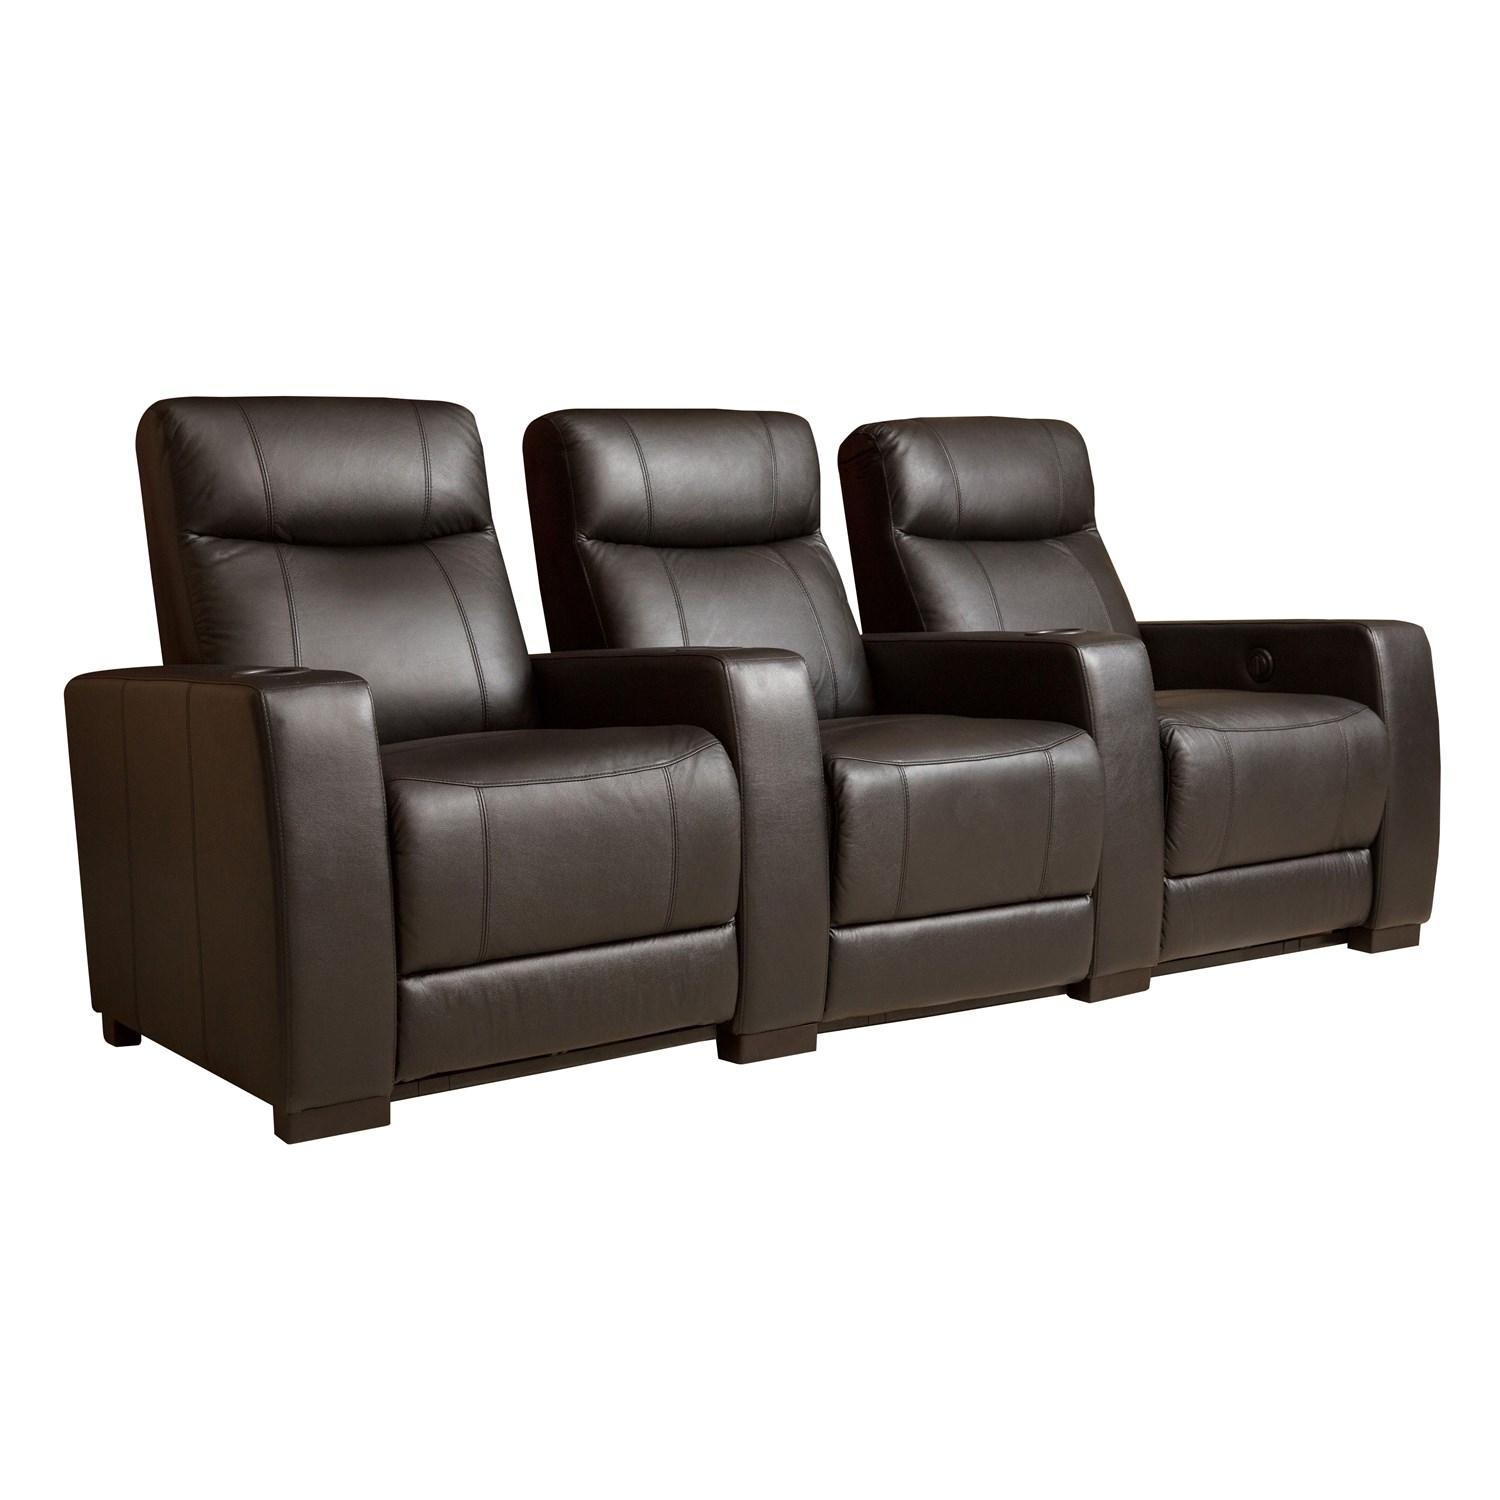 Abbyson Living Sk 1303 Blk Montgomery 3 Piece Top Grain Leather Intended For Abbyson Recliners (View 17 of 20)